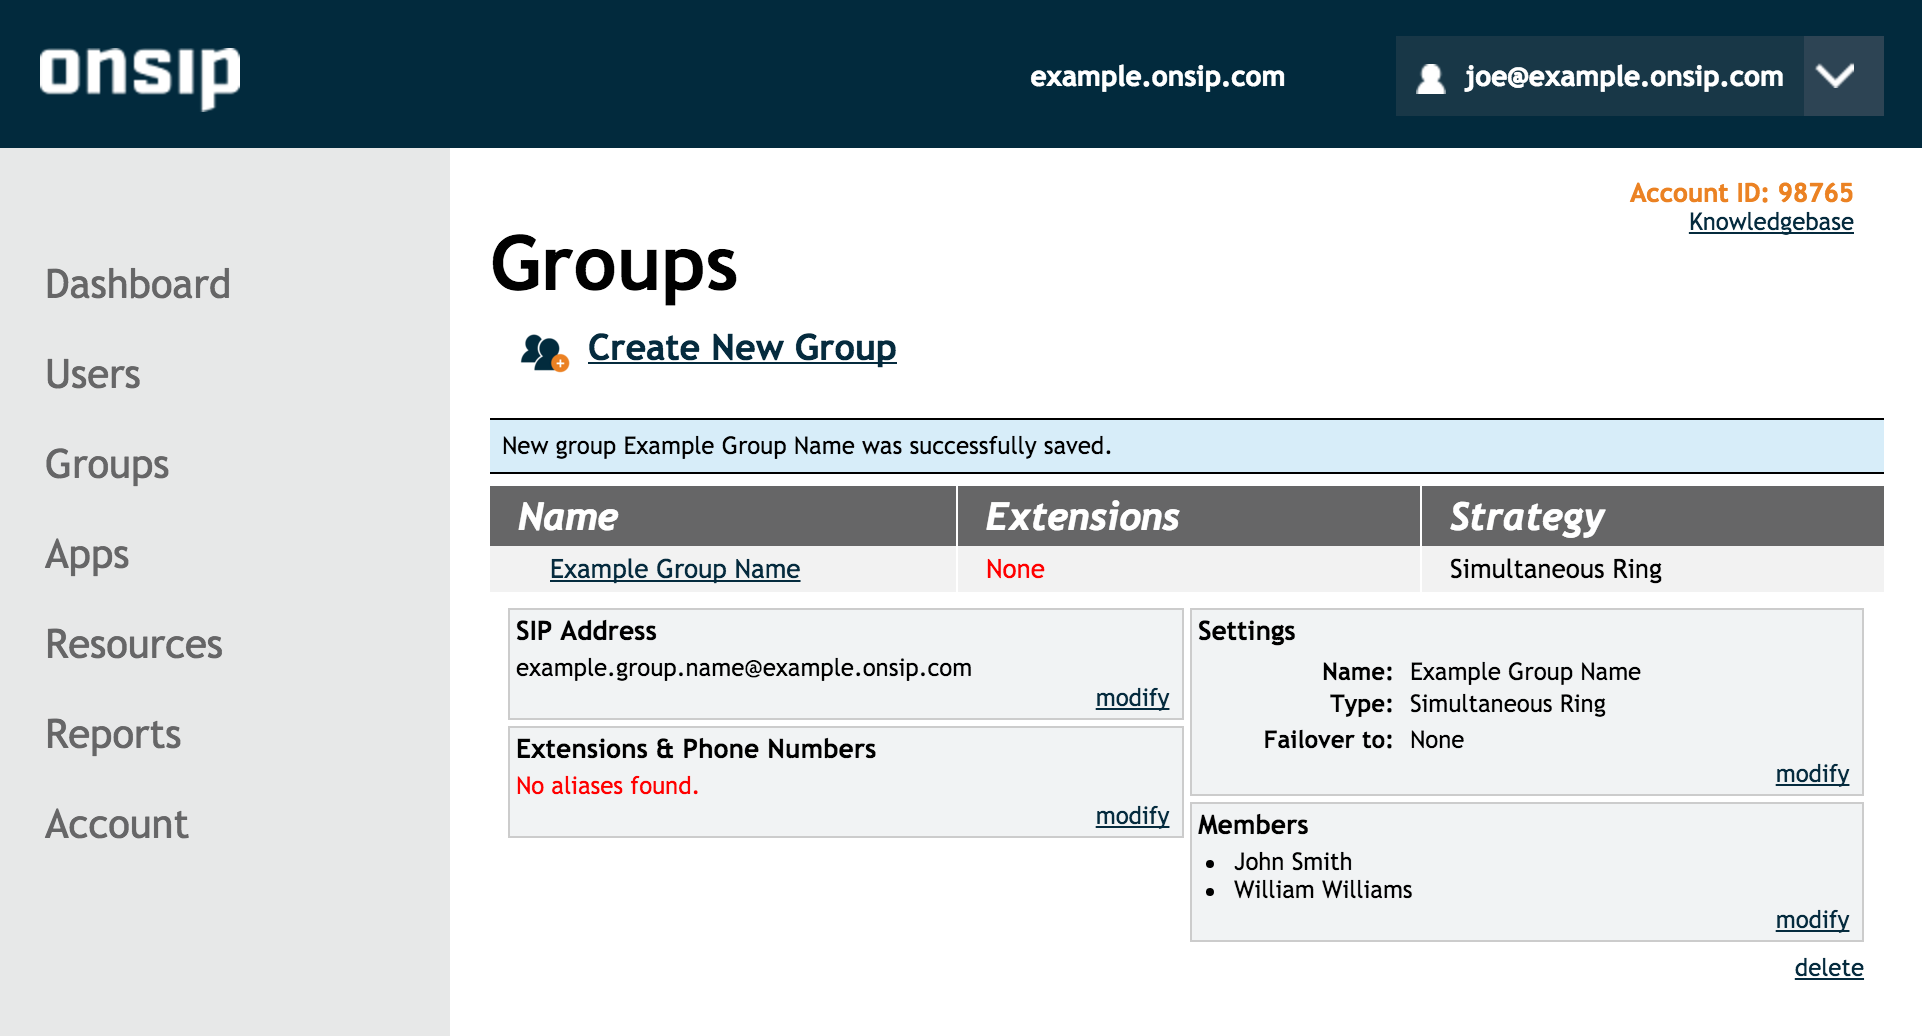 Screenshot of Group Details and Modify Group in the OnSIP admin portal.